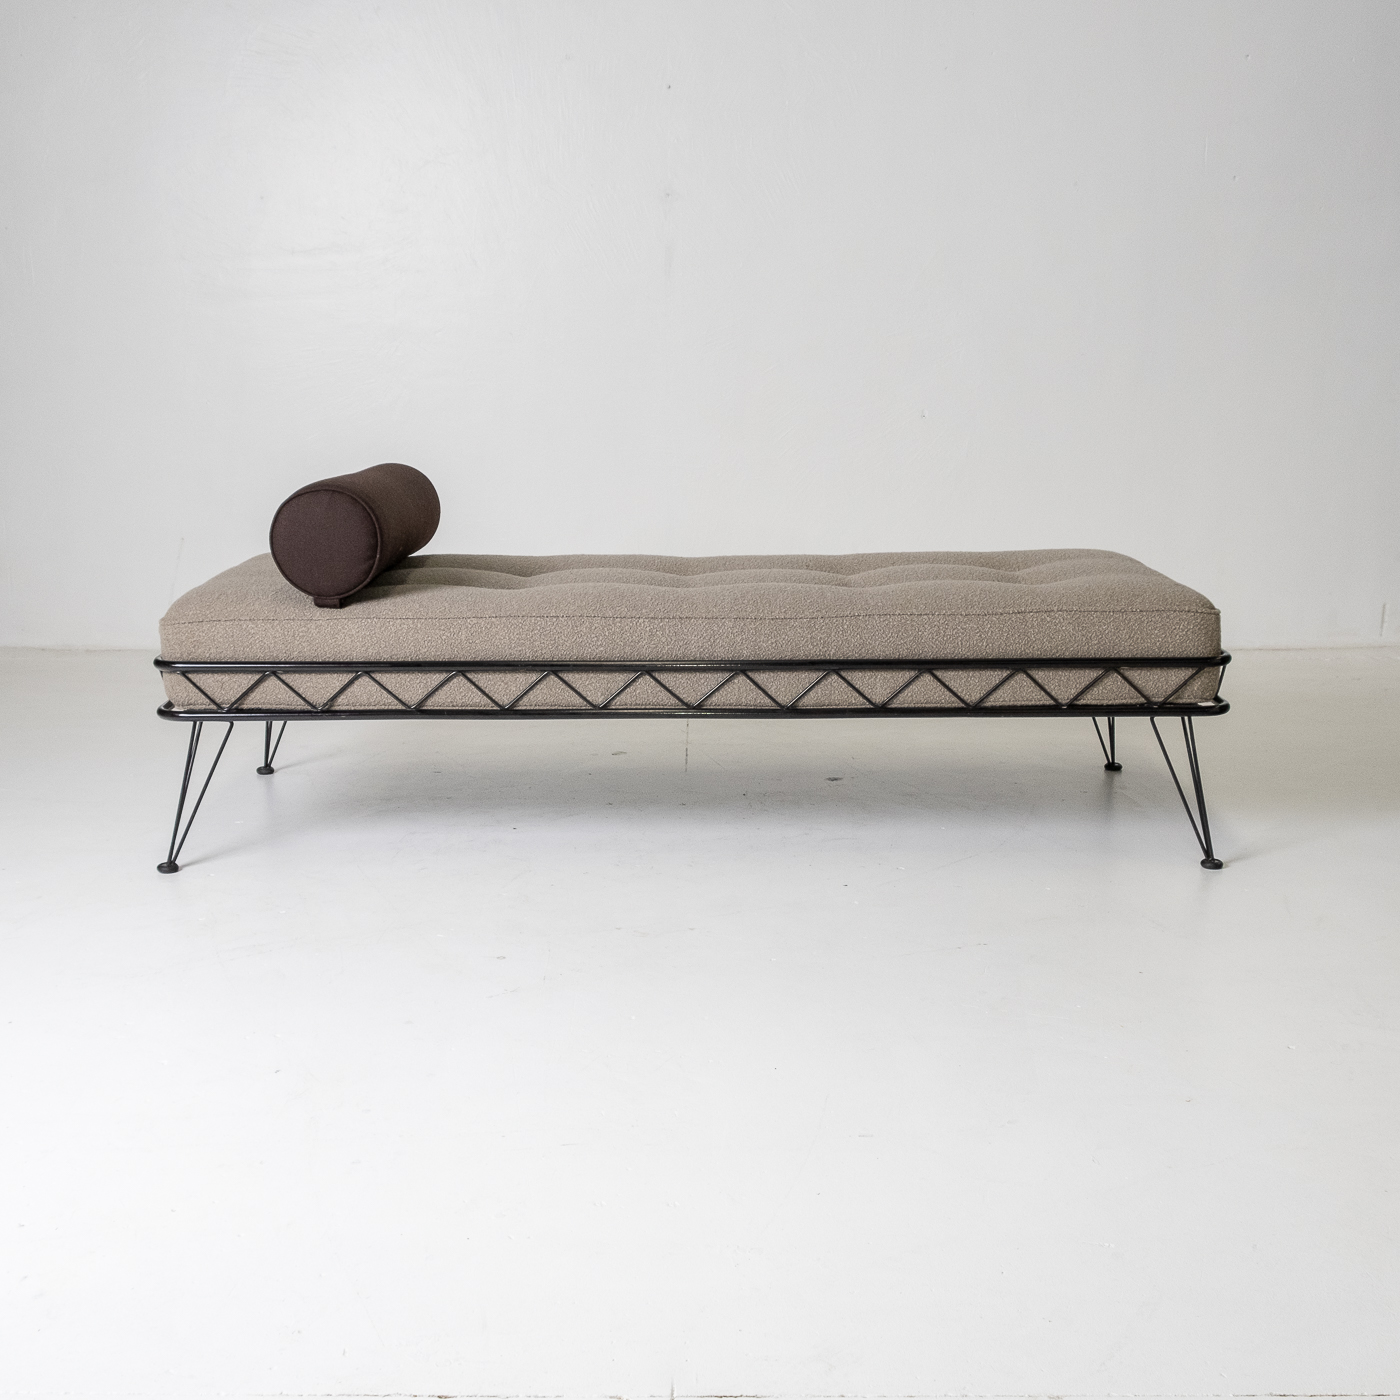 Arielle Daybed By Wim Rietveld For Auping With Black Frame And New Instyle Boucle Upholstery, 1956, The Netherlands 44